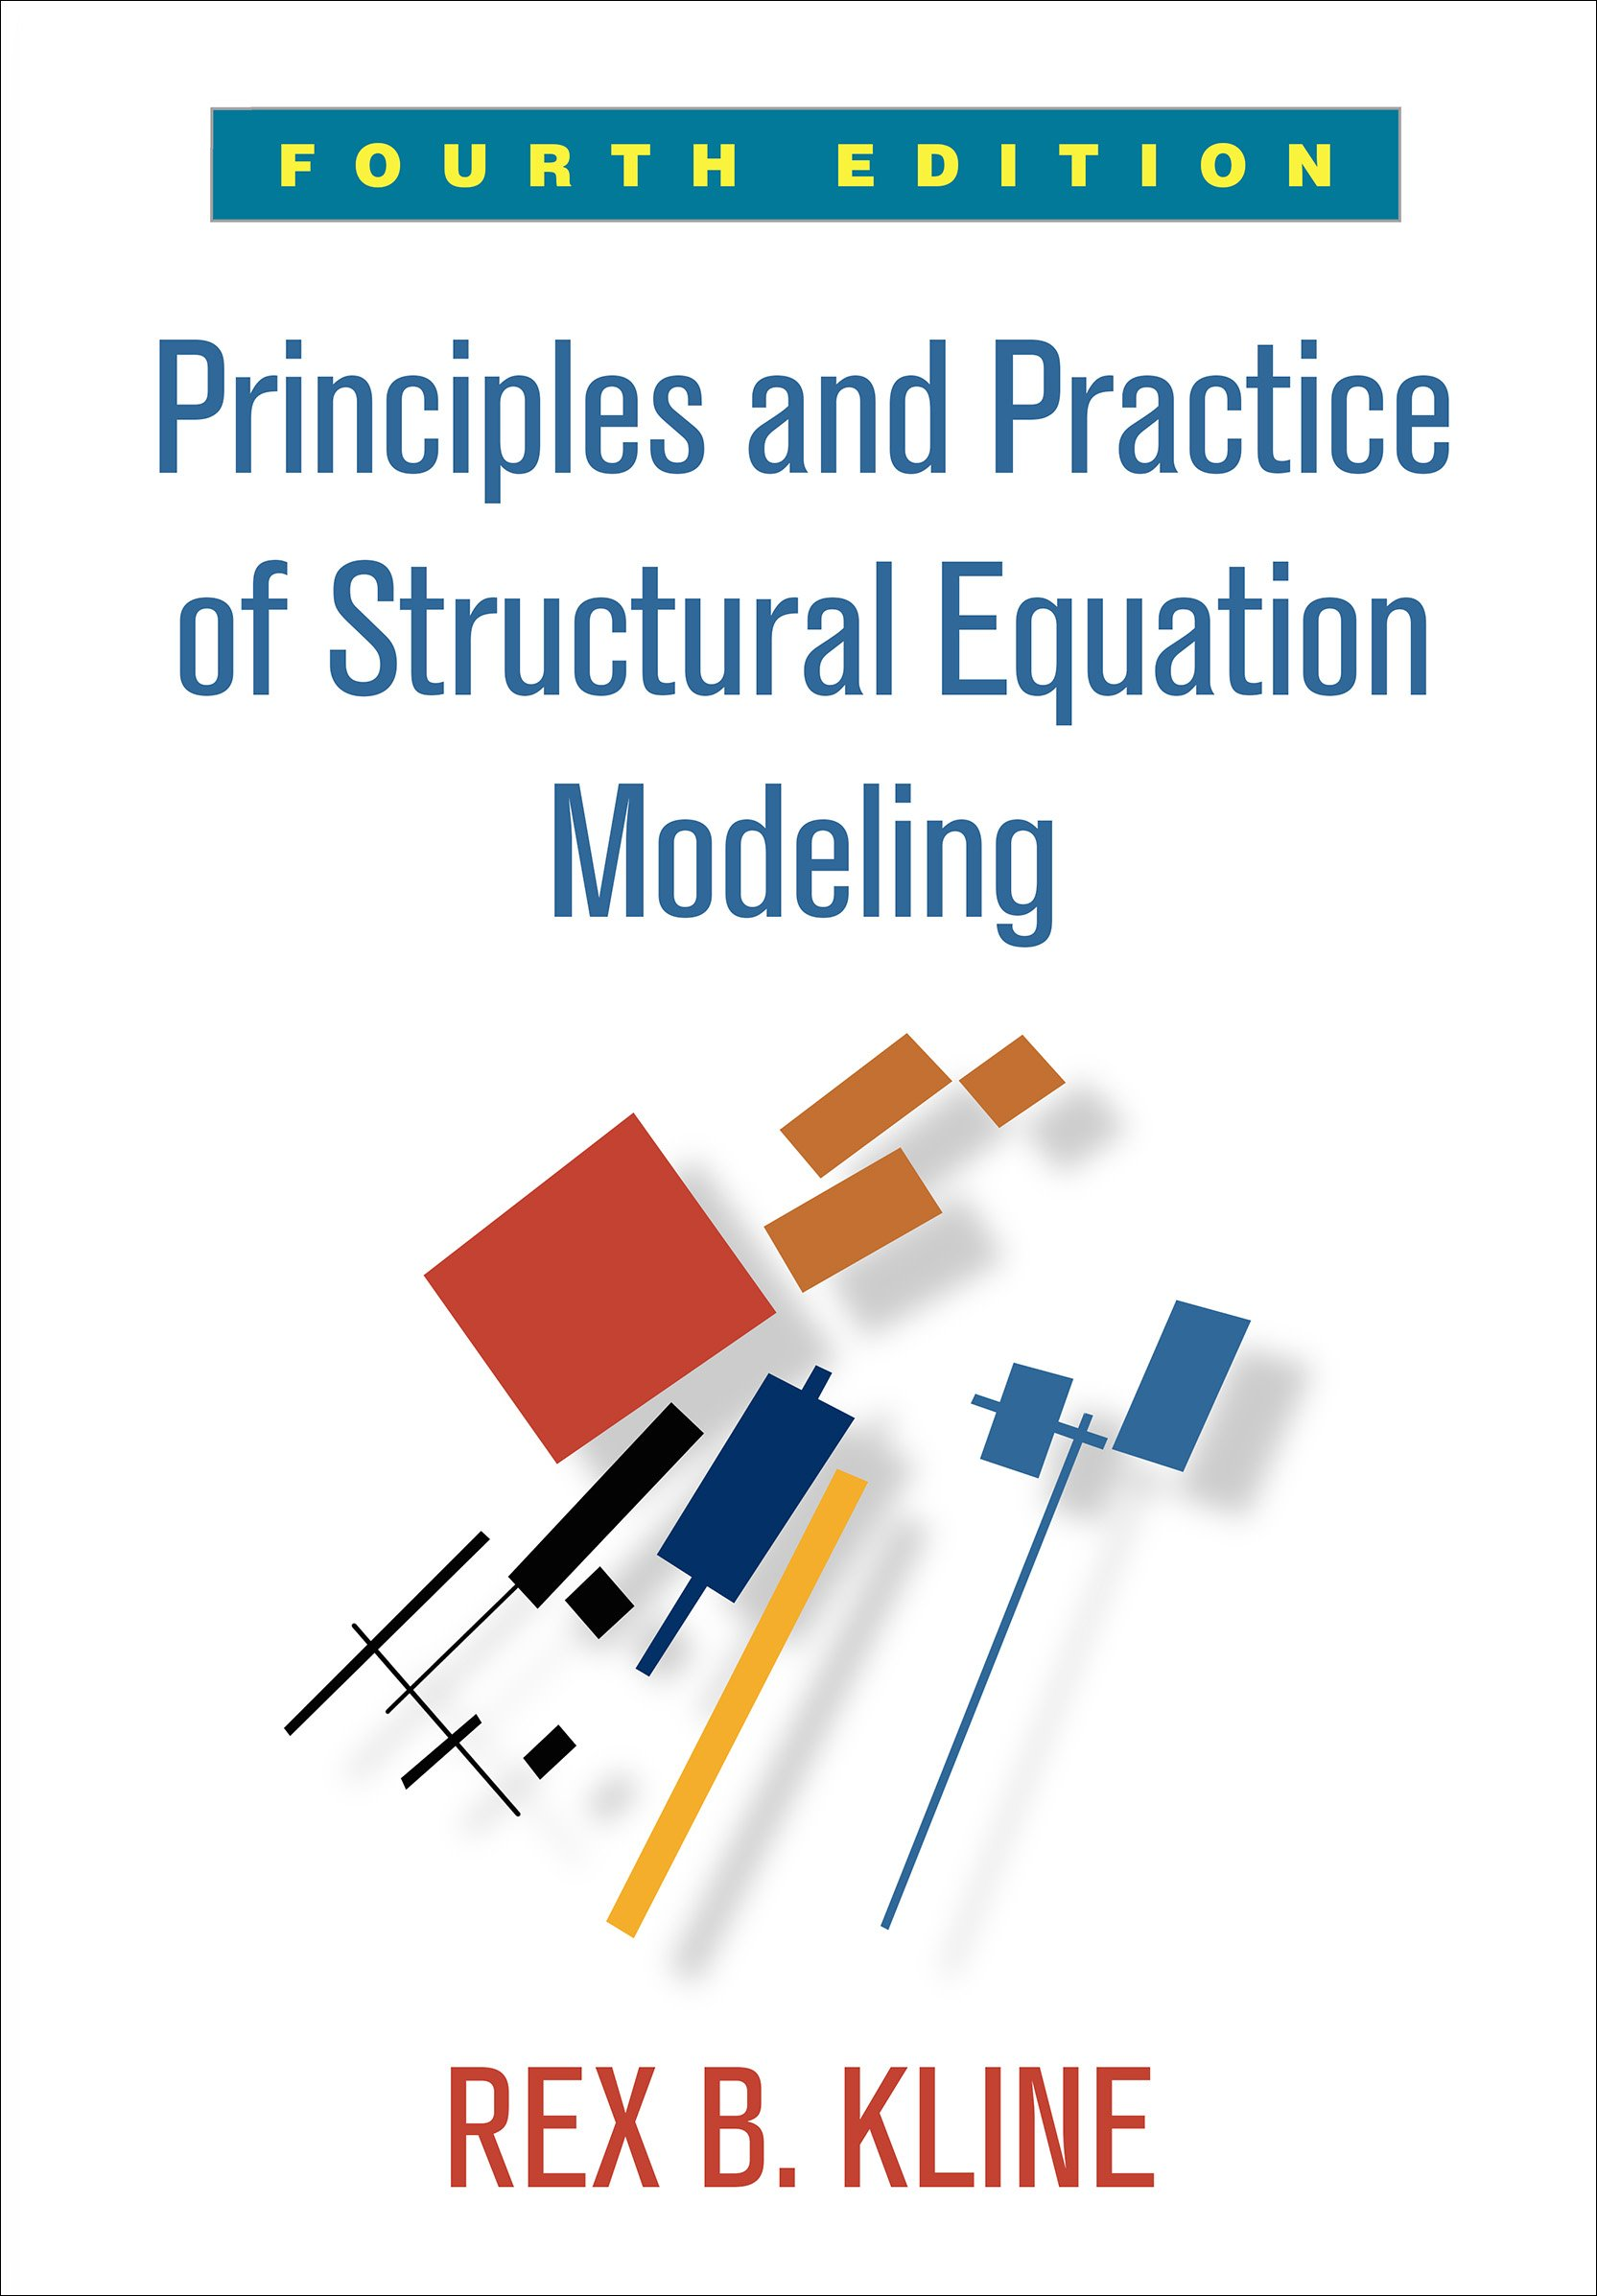 Download Principles And Practice Of Structural Equation Modeling, Fourth Edition: Fourth Edition 